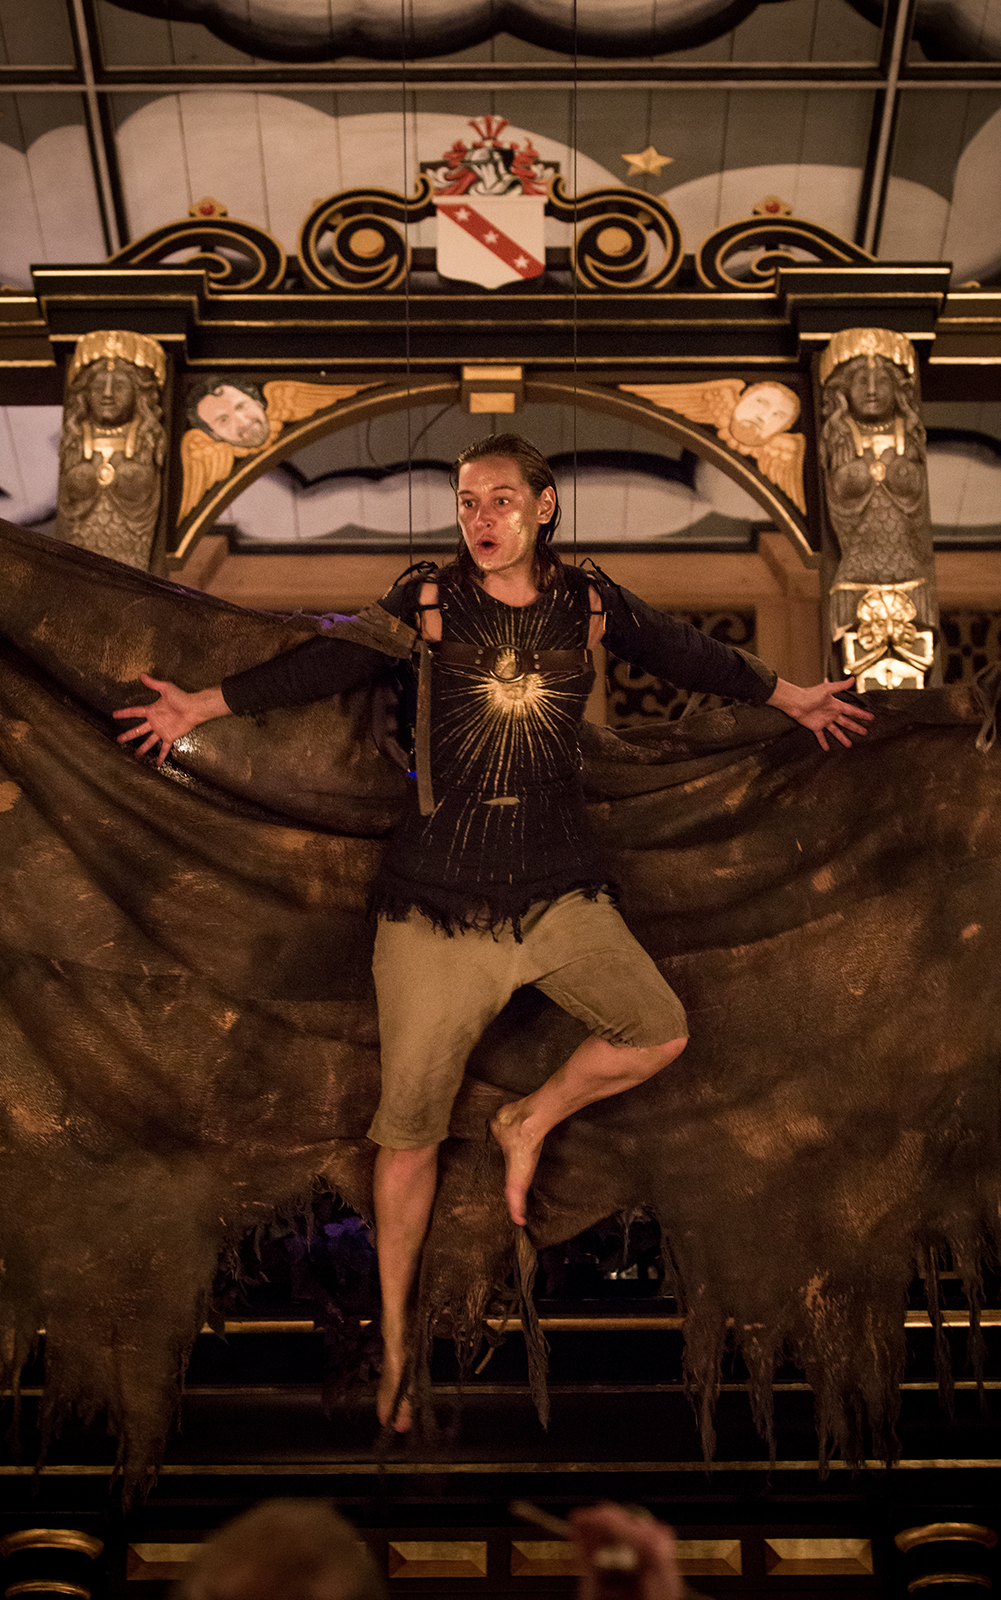 A woman with large wings and a painted gold face, hangs in the air of the Sam Wanamaker Playhouse